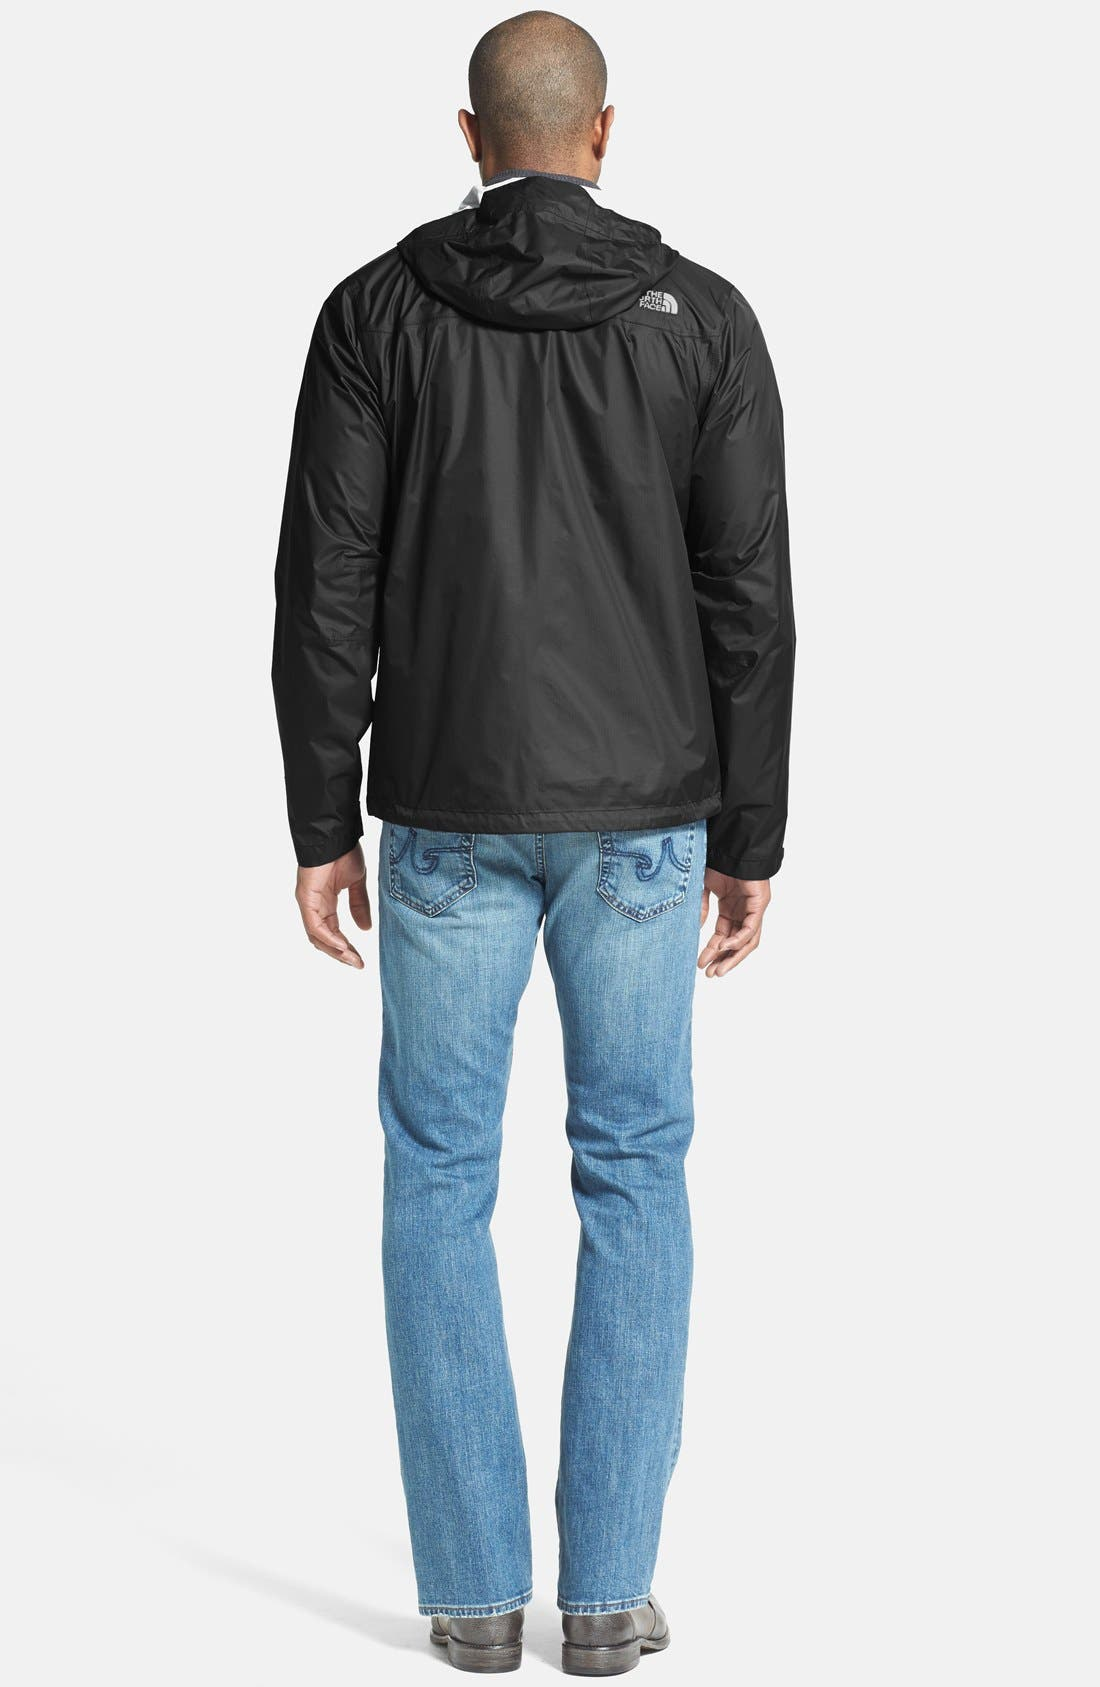 THE NORTH FACE,                             Venture Waterproof Jacket,                             Alternate thumbnail 4, color,                             001